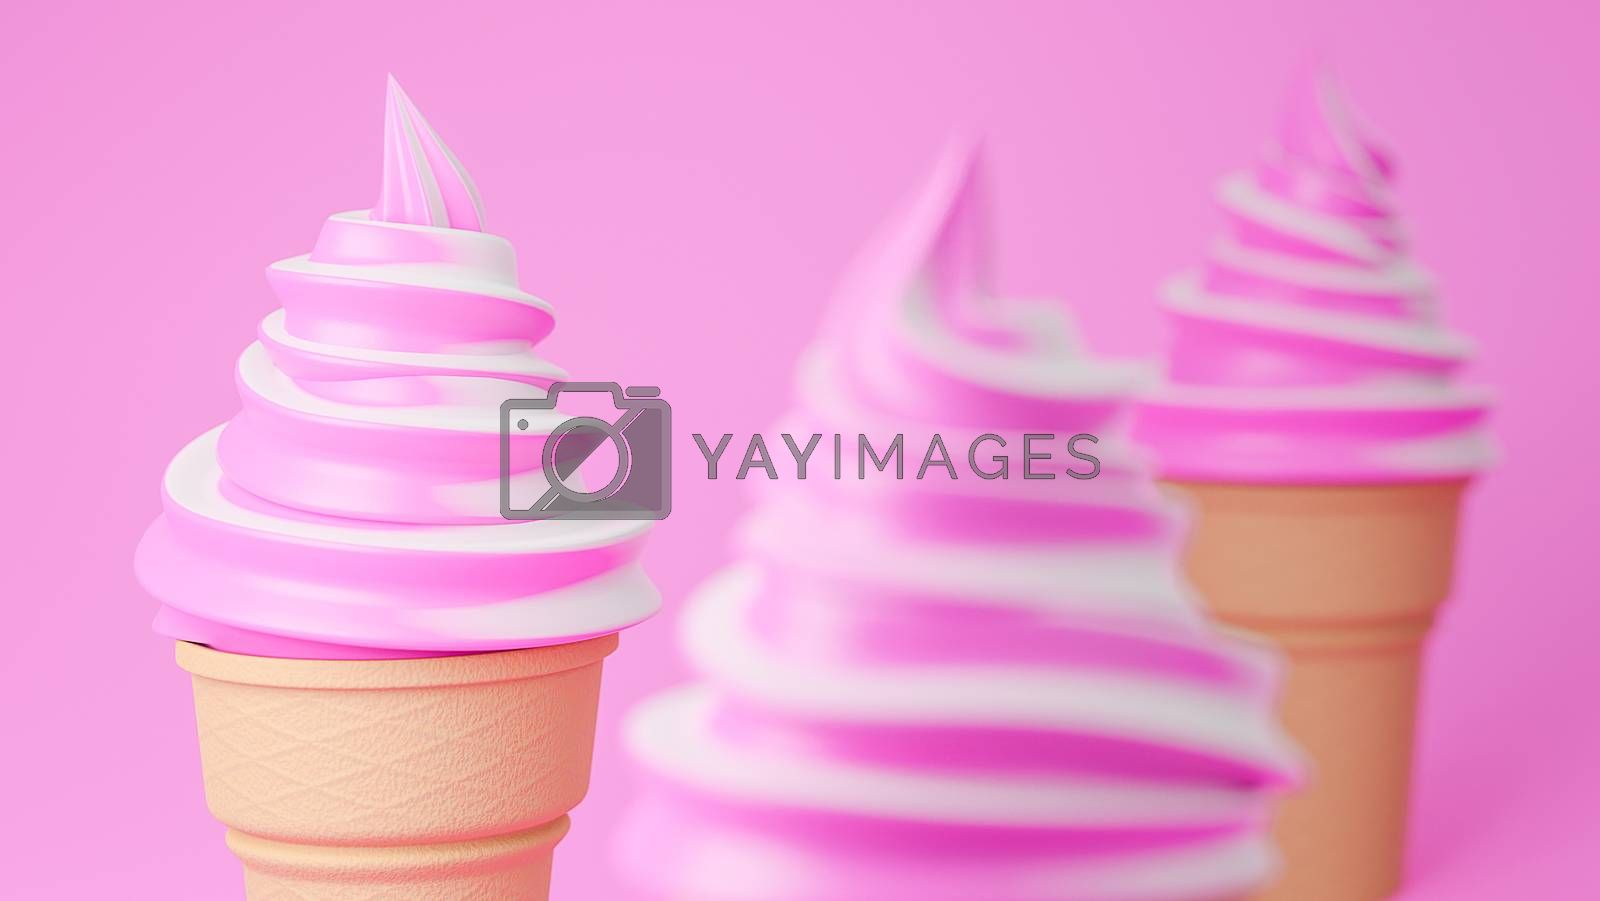 Soft serve ice cream of strawberry and milk flavours on crispy cone on pink background.,3d model and illustration.